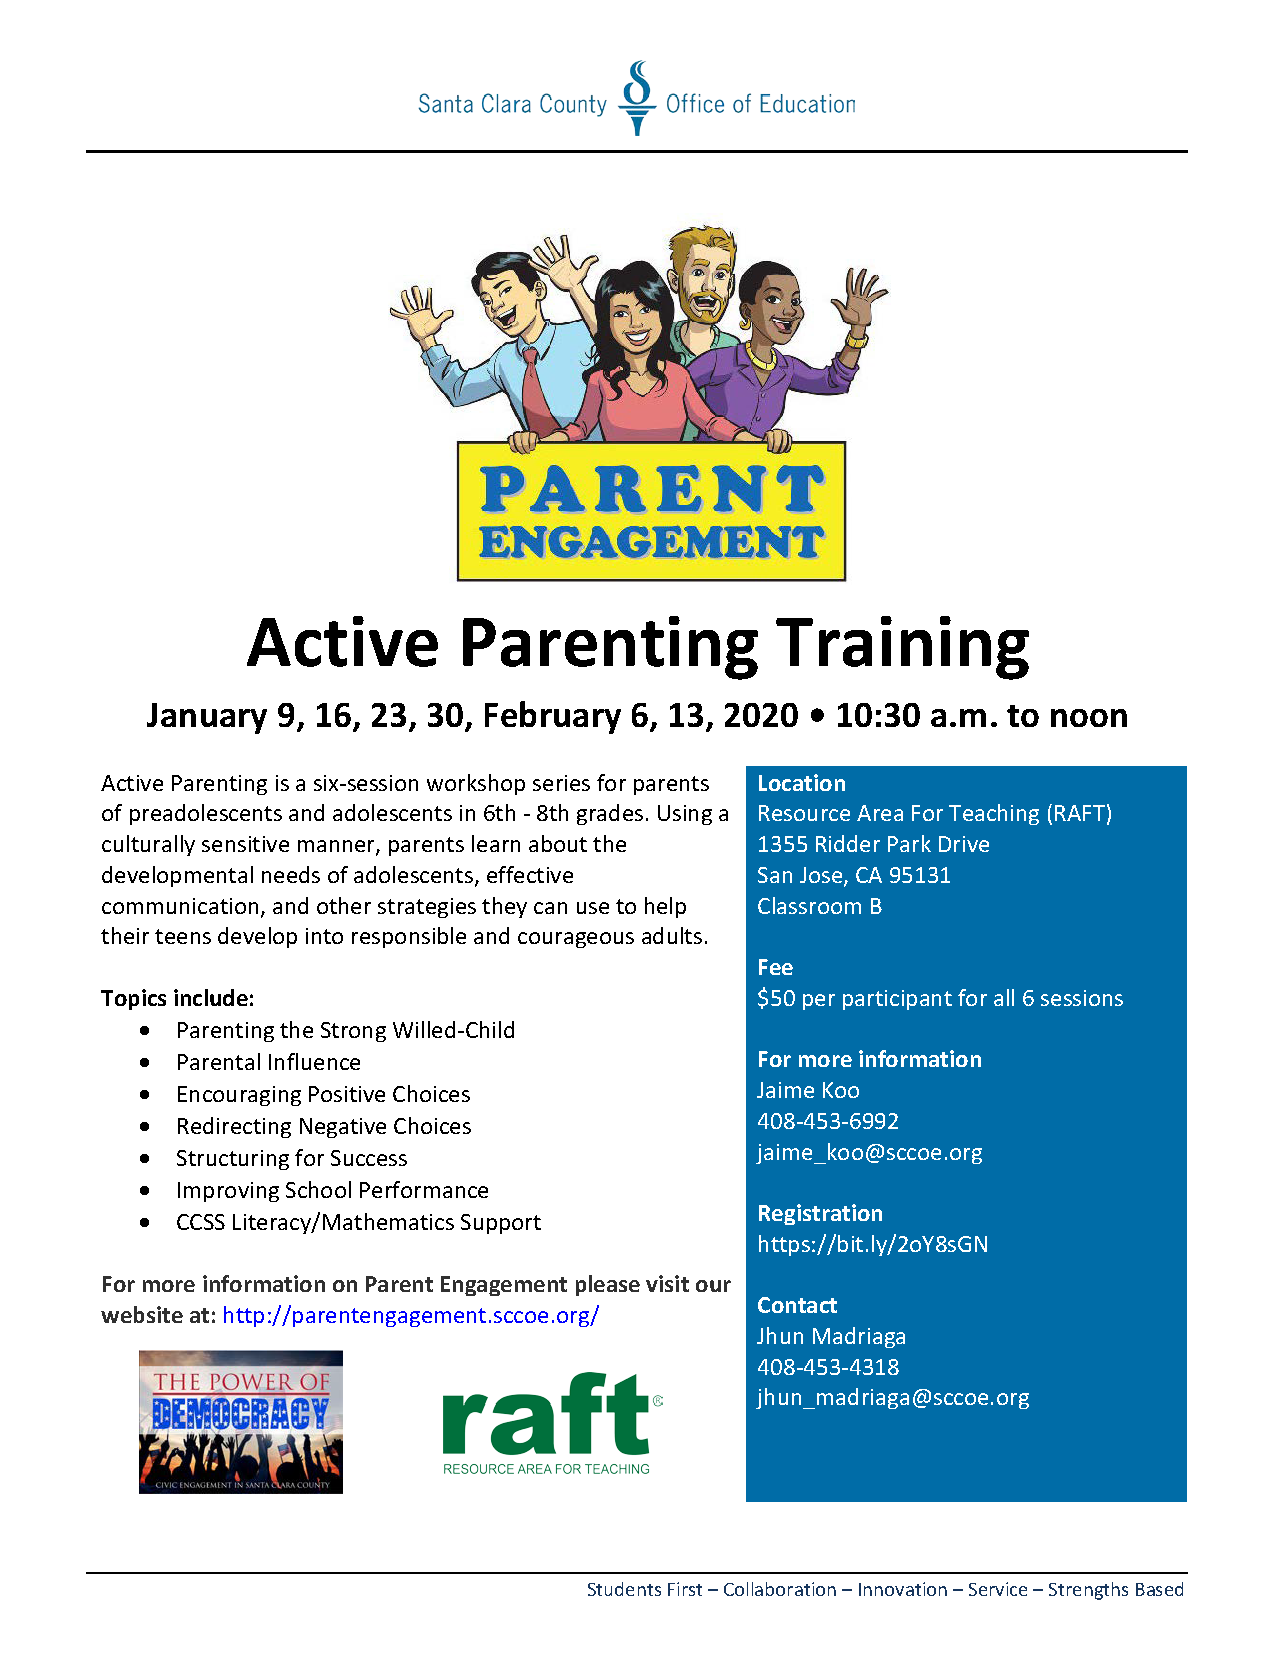 Active Parenting Training January 2020